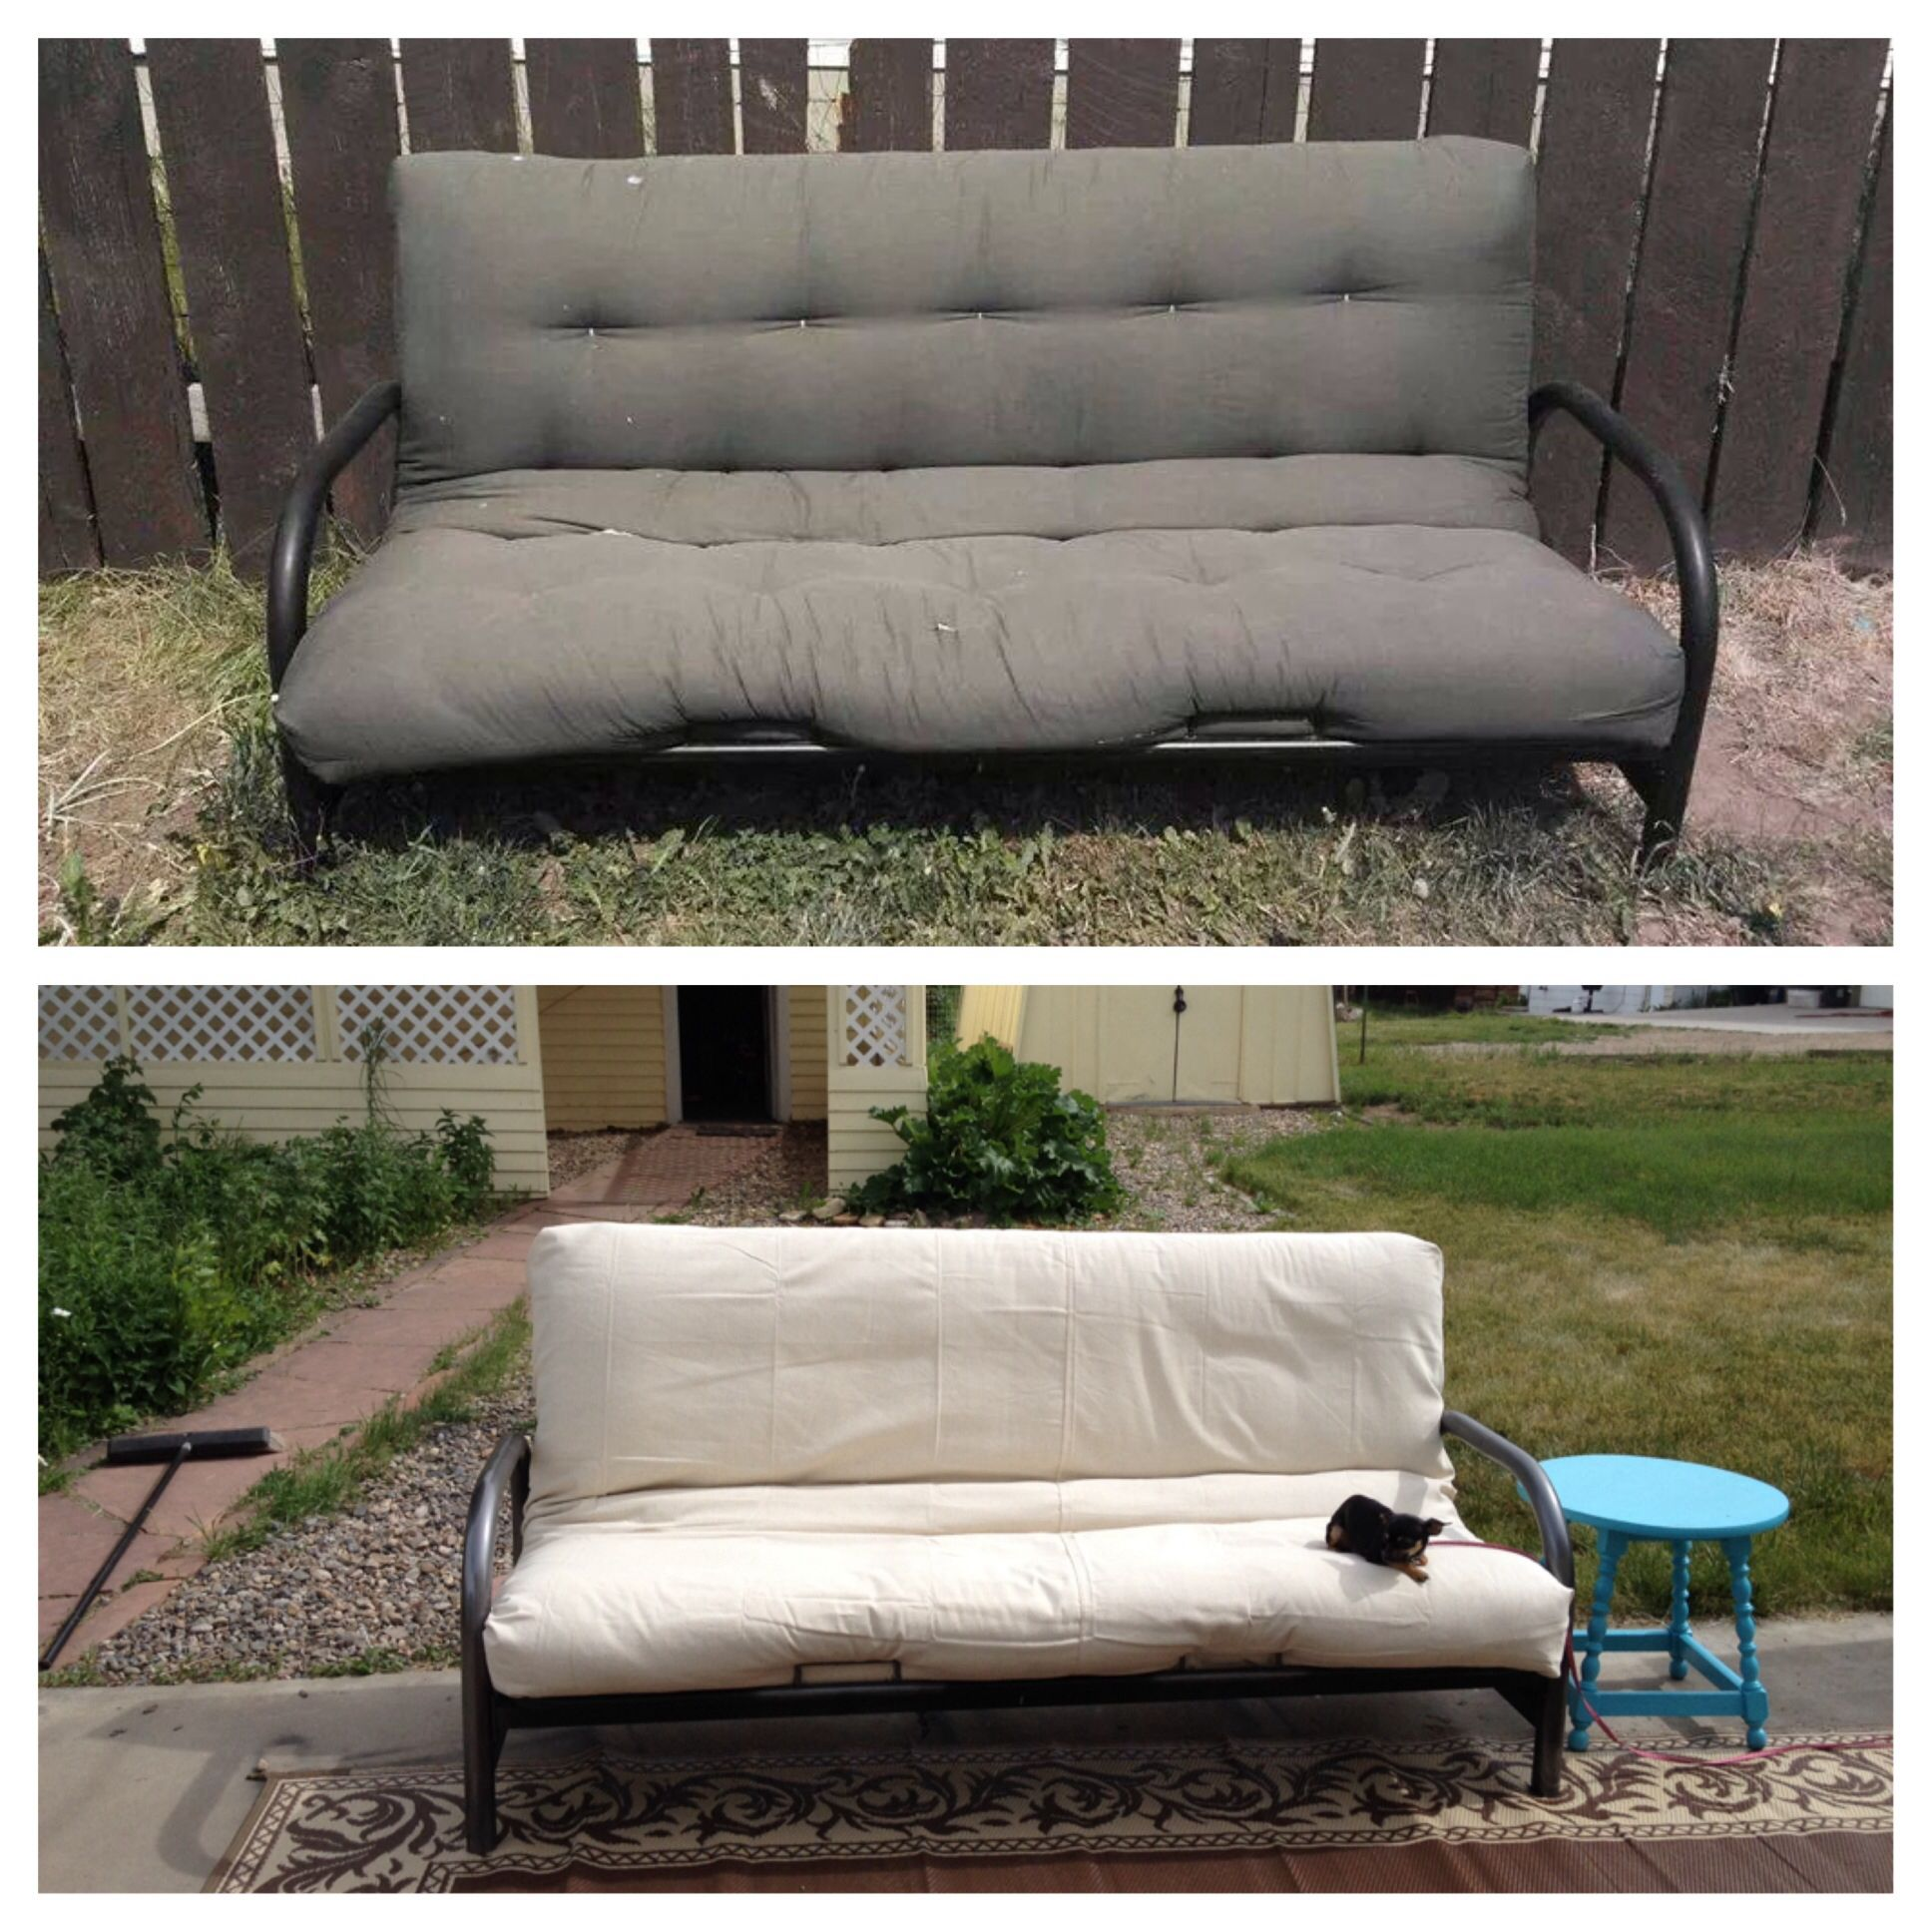 Bought This Old Futon For Patio 15 And Recovered It With Painters Tarp Just Safety Pinned To The Back Easy Waterproofed Waterproof